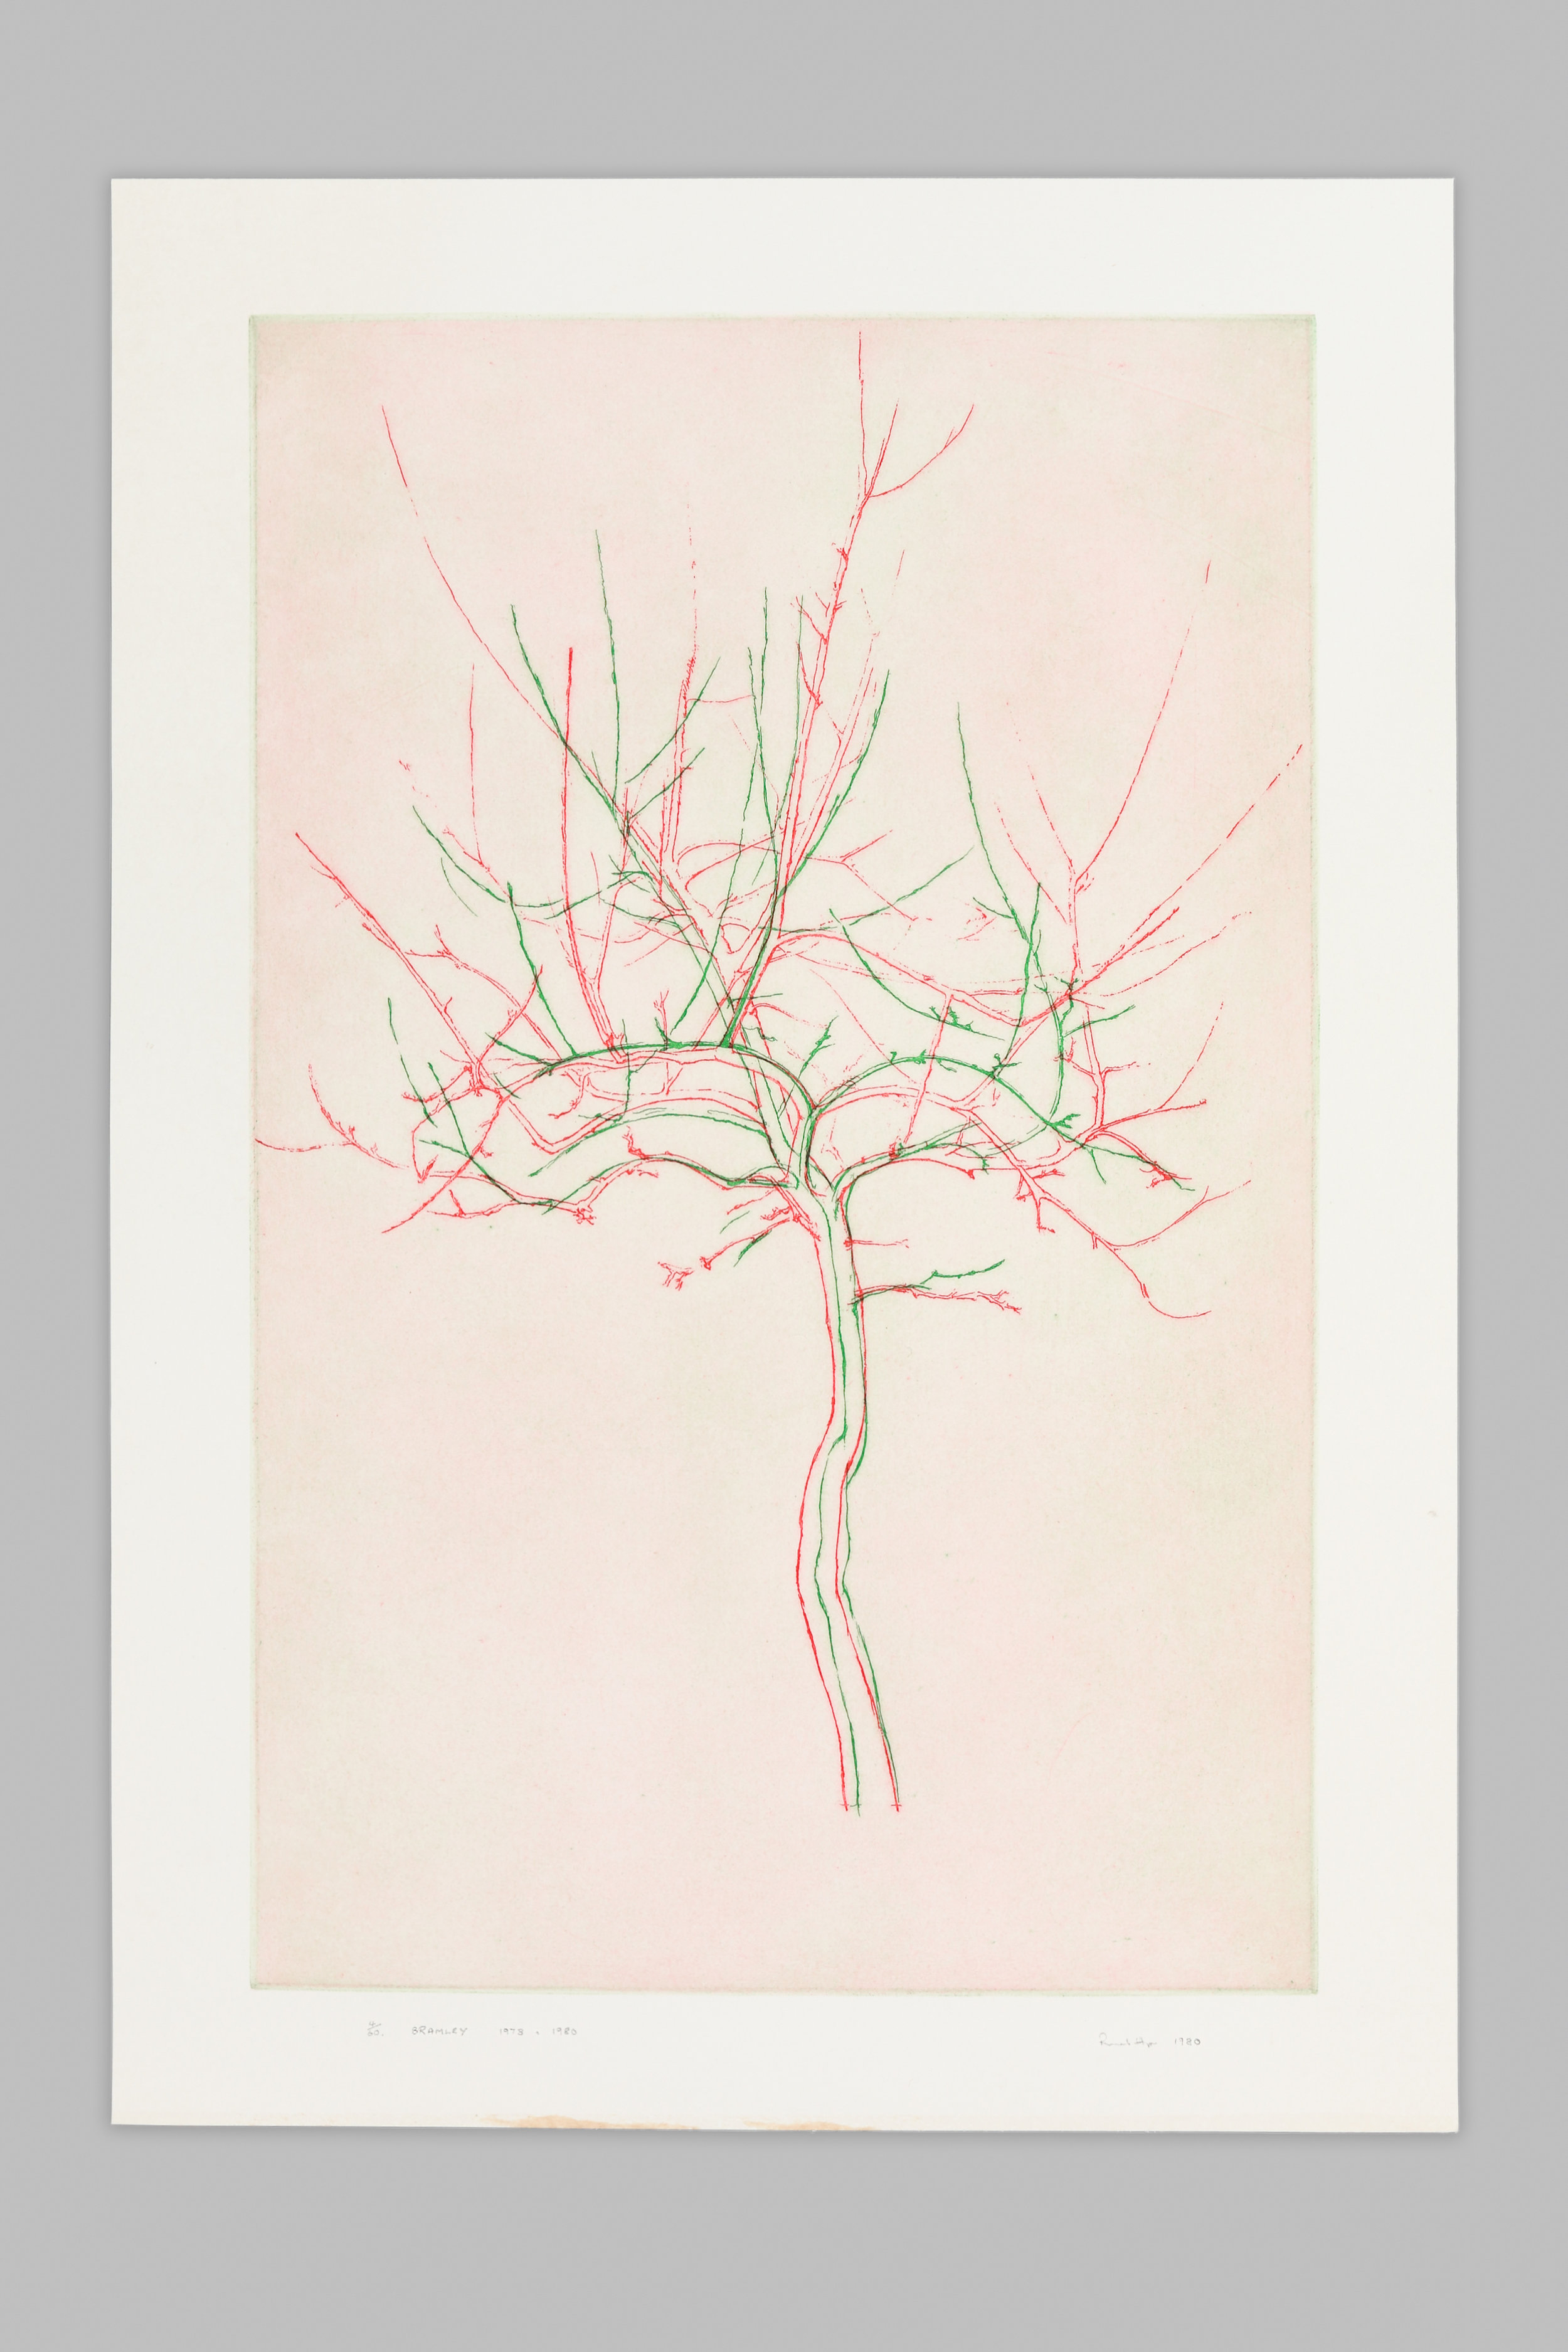 """A photograph of an etching titled """"Bramley"""". The artwork is semi-abstract and mainly uses green and red lines to create the impression of a tree."""